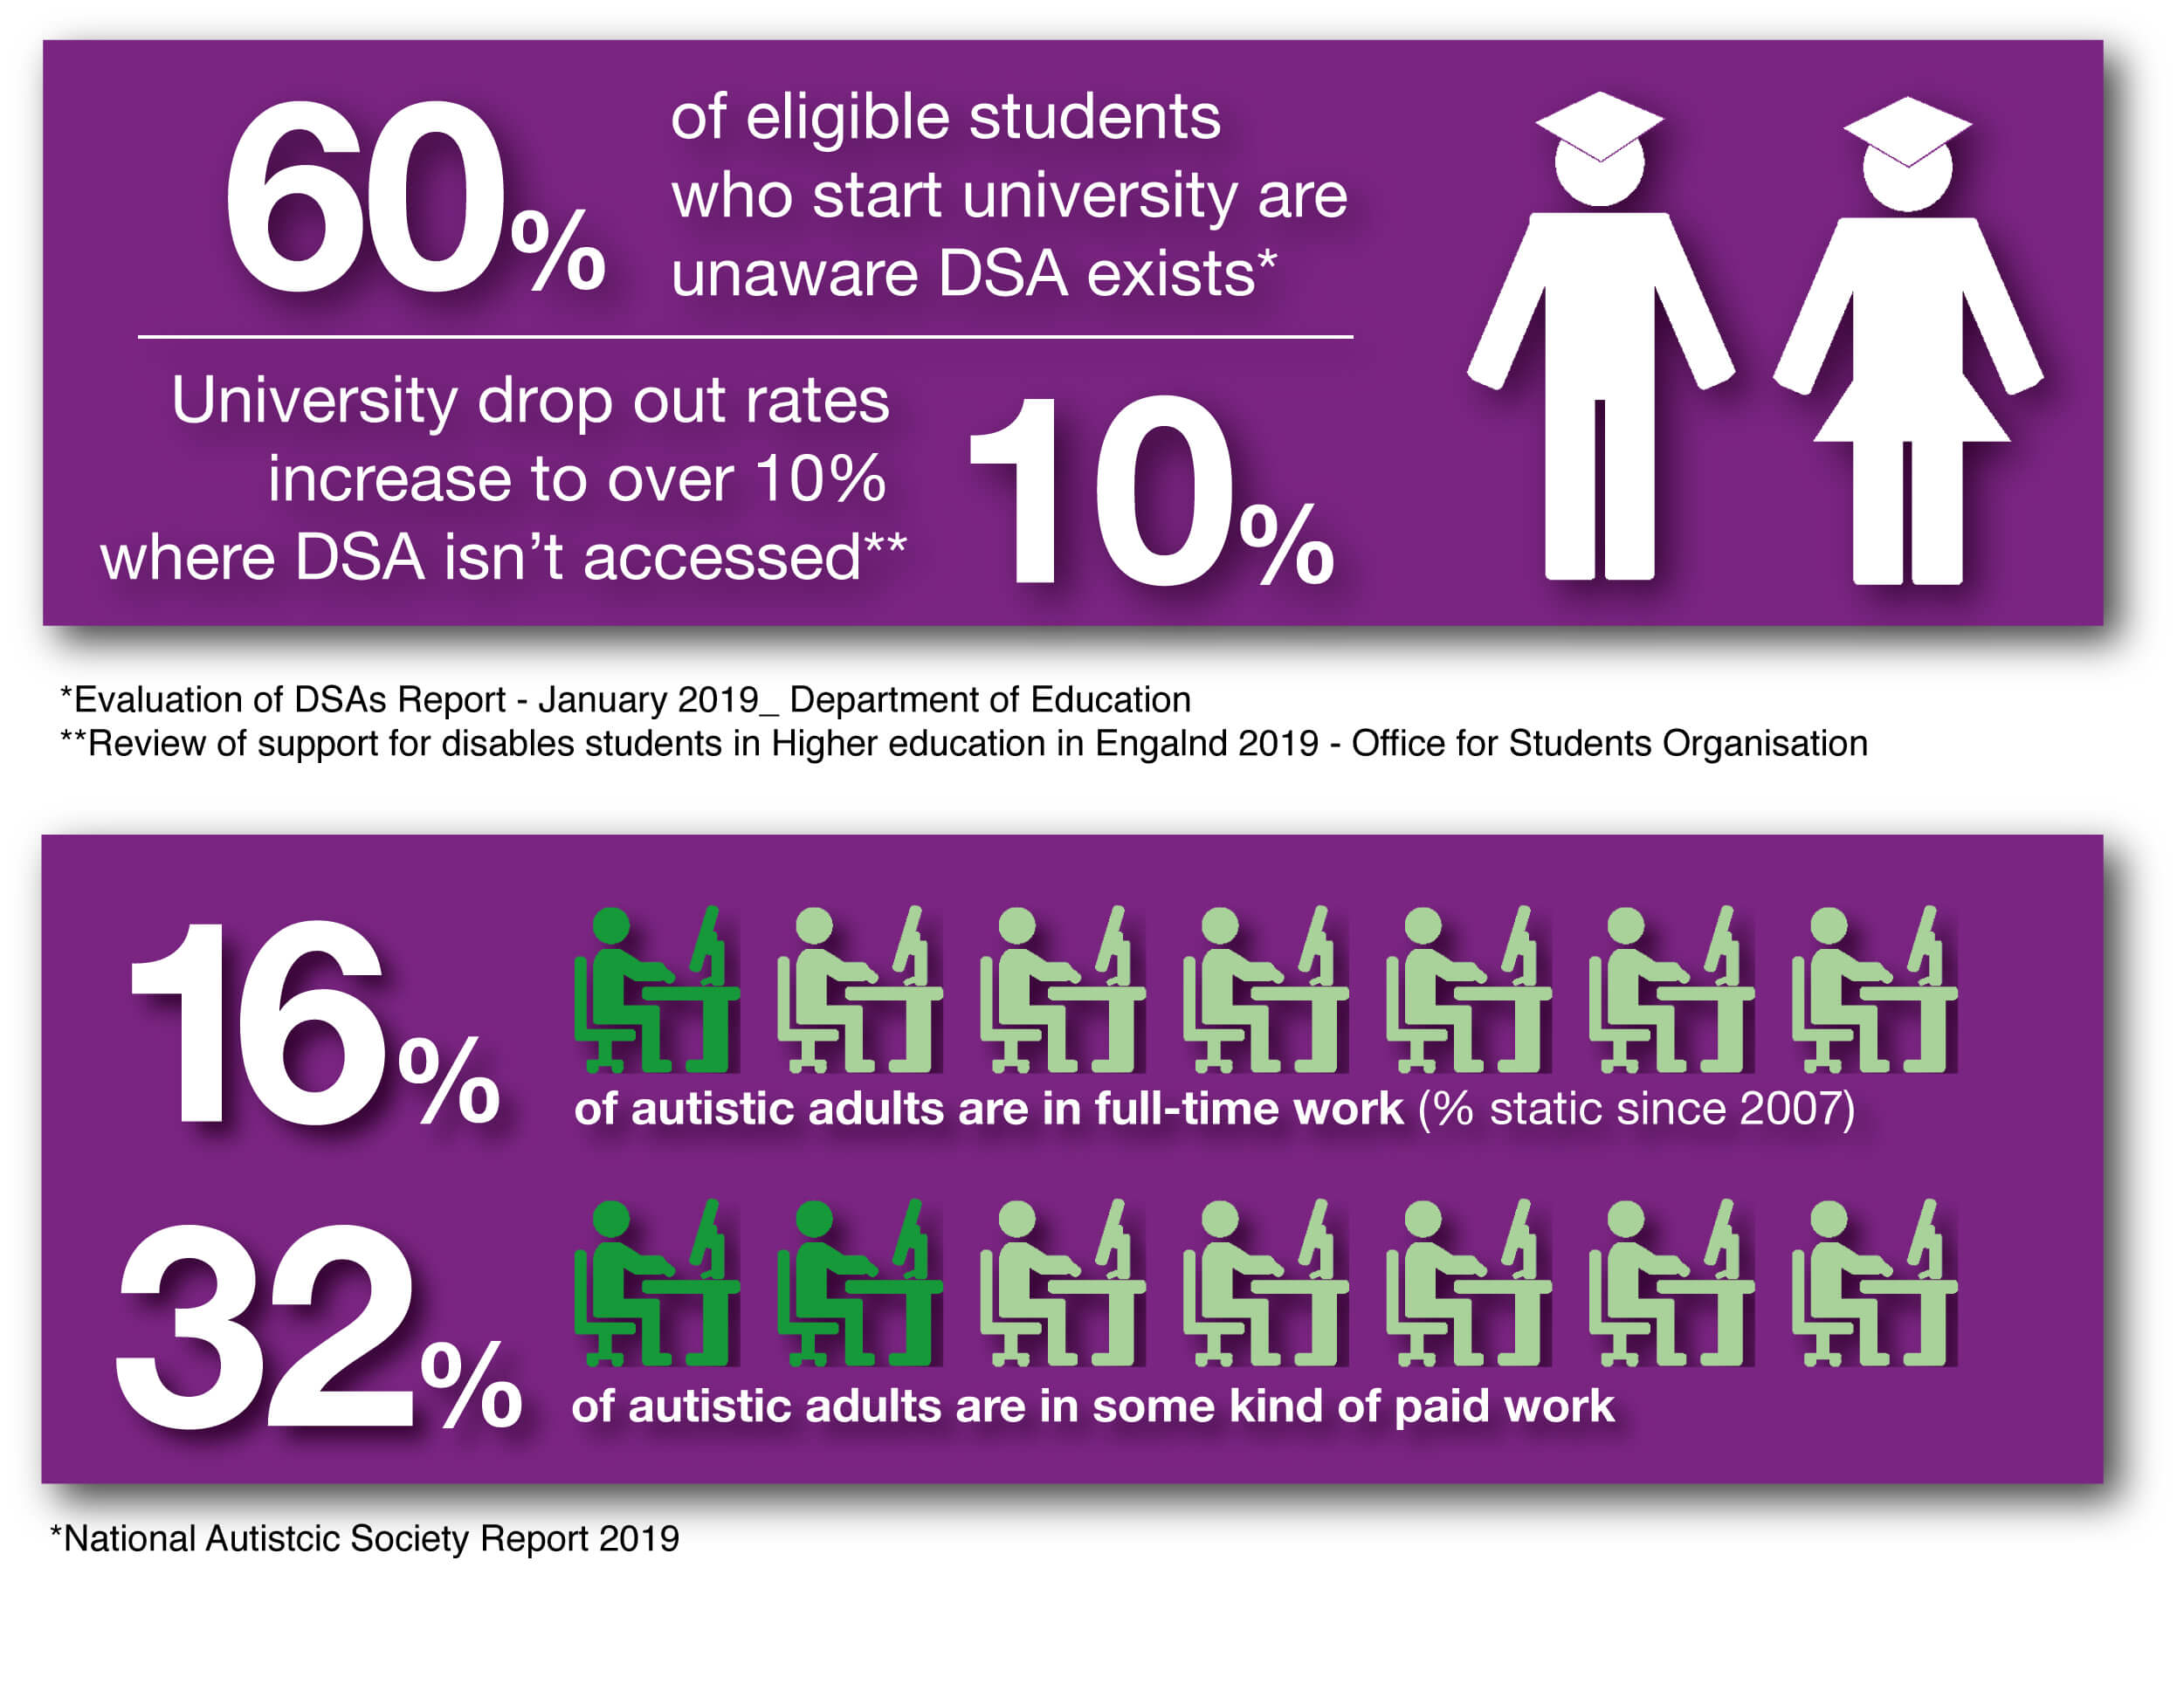 Statistics showing that 60% of eligible students are unaware that DSA exists when they start university, and that 16% of autistic adults are in full-time work